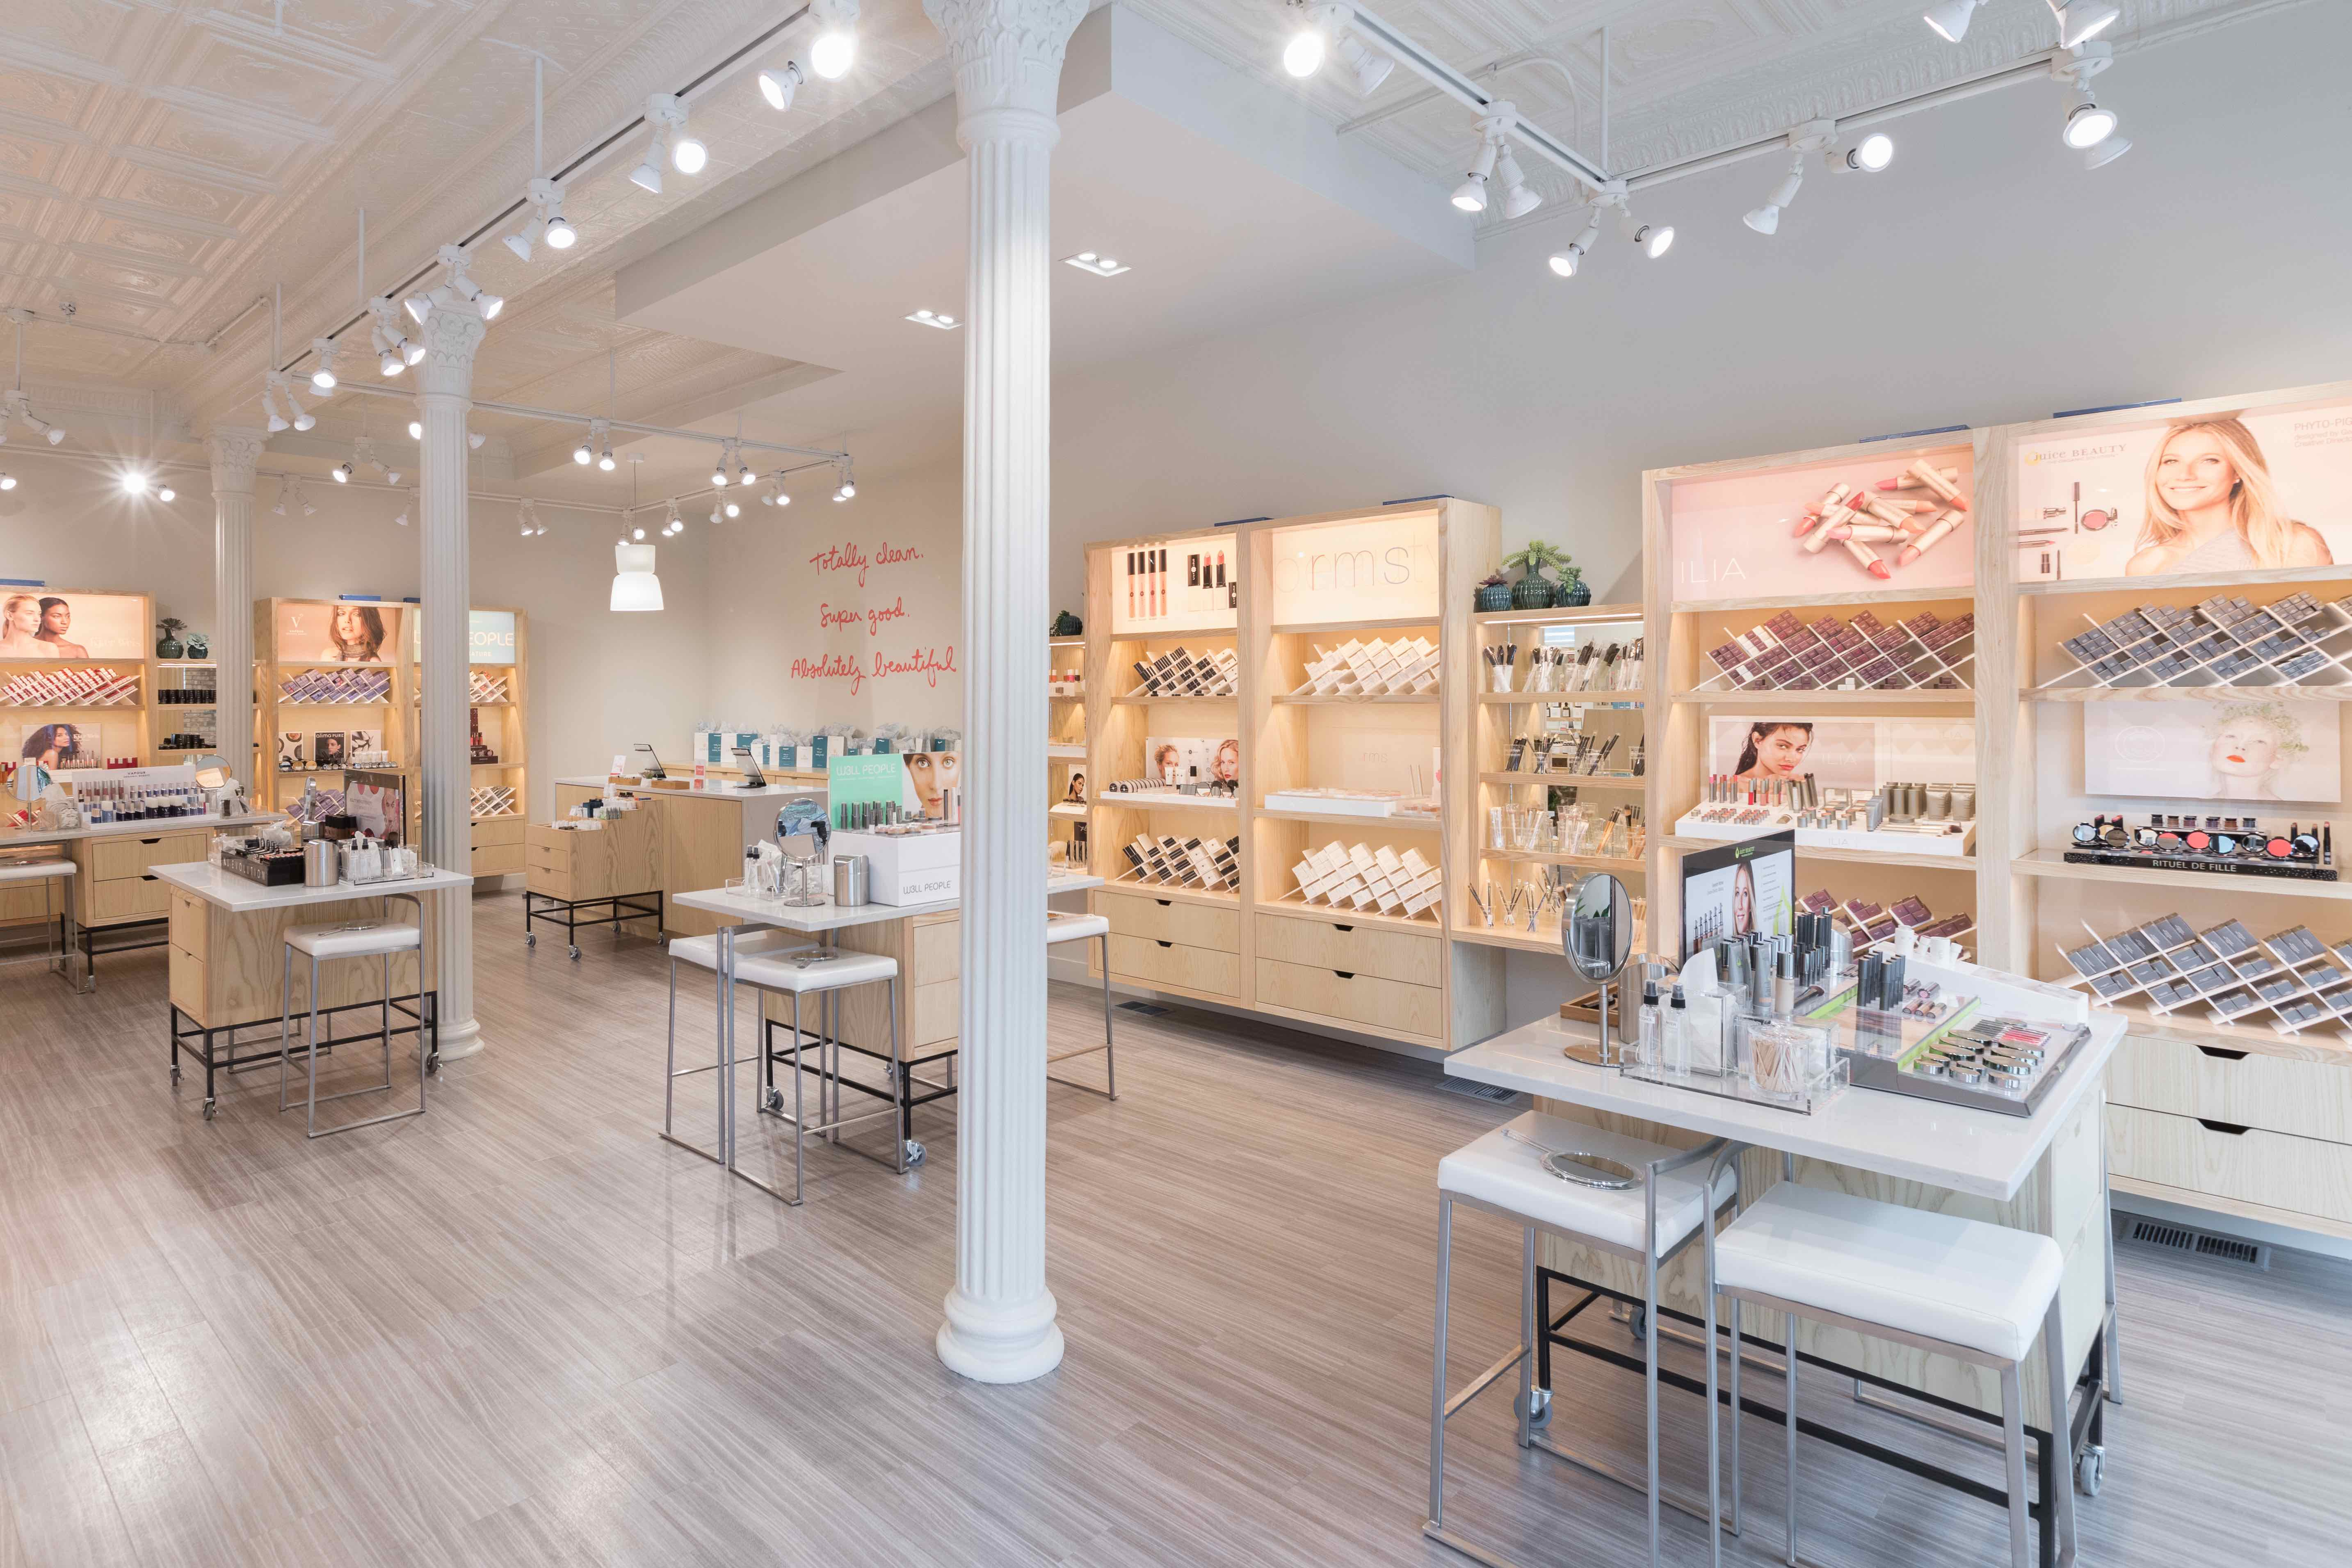 Credo is partnering with Ulta Beauty on endcaps featuring eight clean beauty brands, including One Love Organics, Innersense Organic Beauty and its sunscreen collaboration with EleVen by Venus Williams, in 100 locations and a dedicated landing page on its e-commerce platform scheduled for the fall.